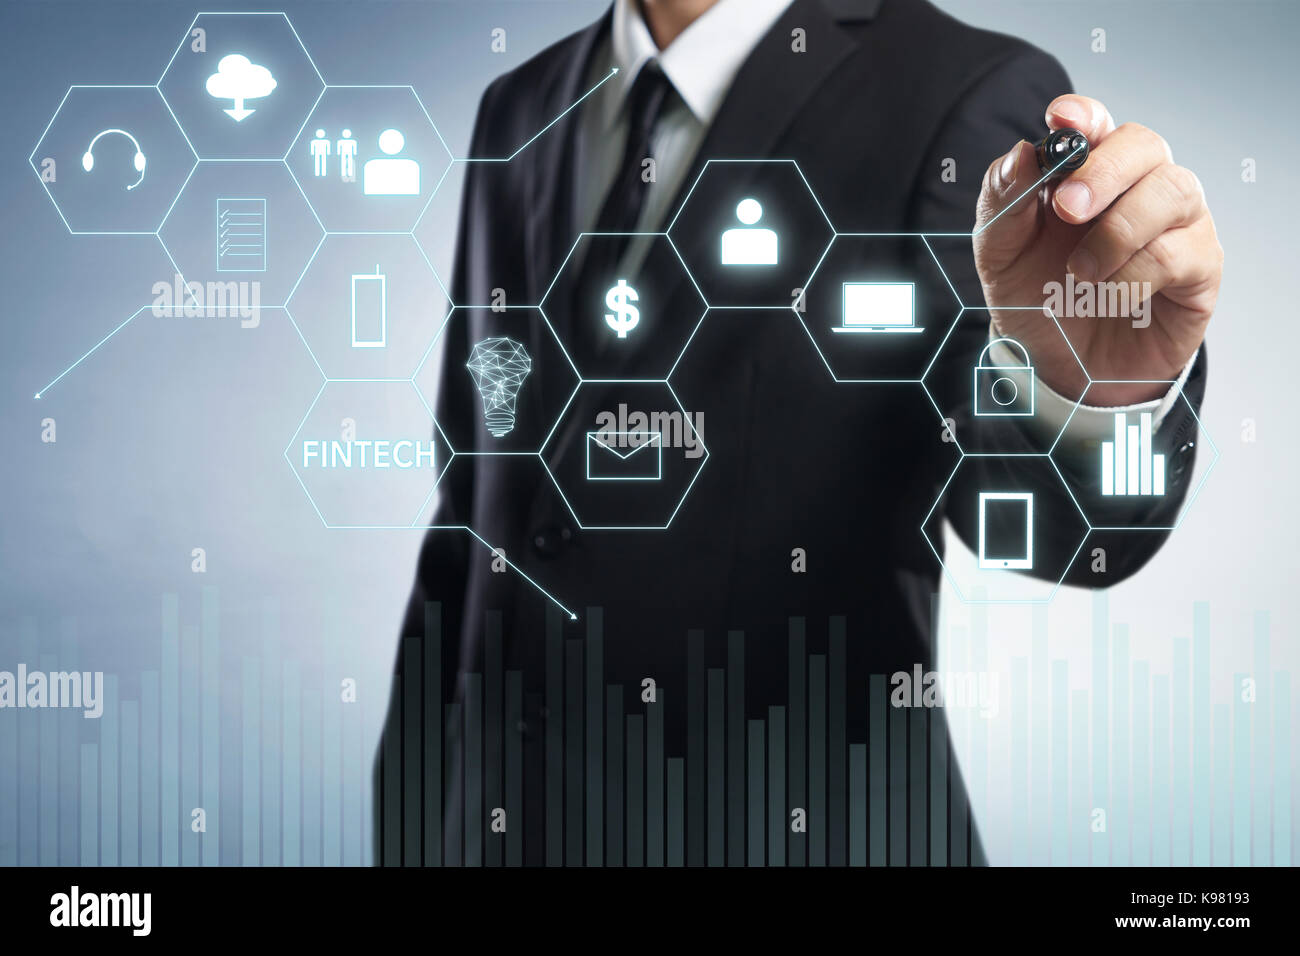 Businessman draw 'Fintech' word on digital virtual screen . Hi-tech business concept . - Stock Image